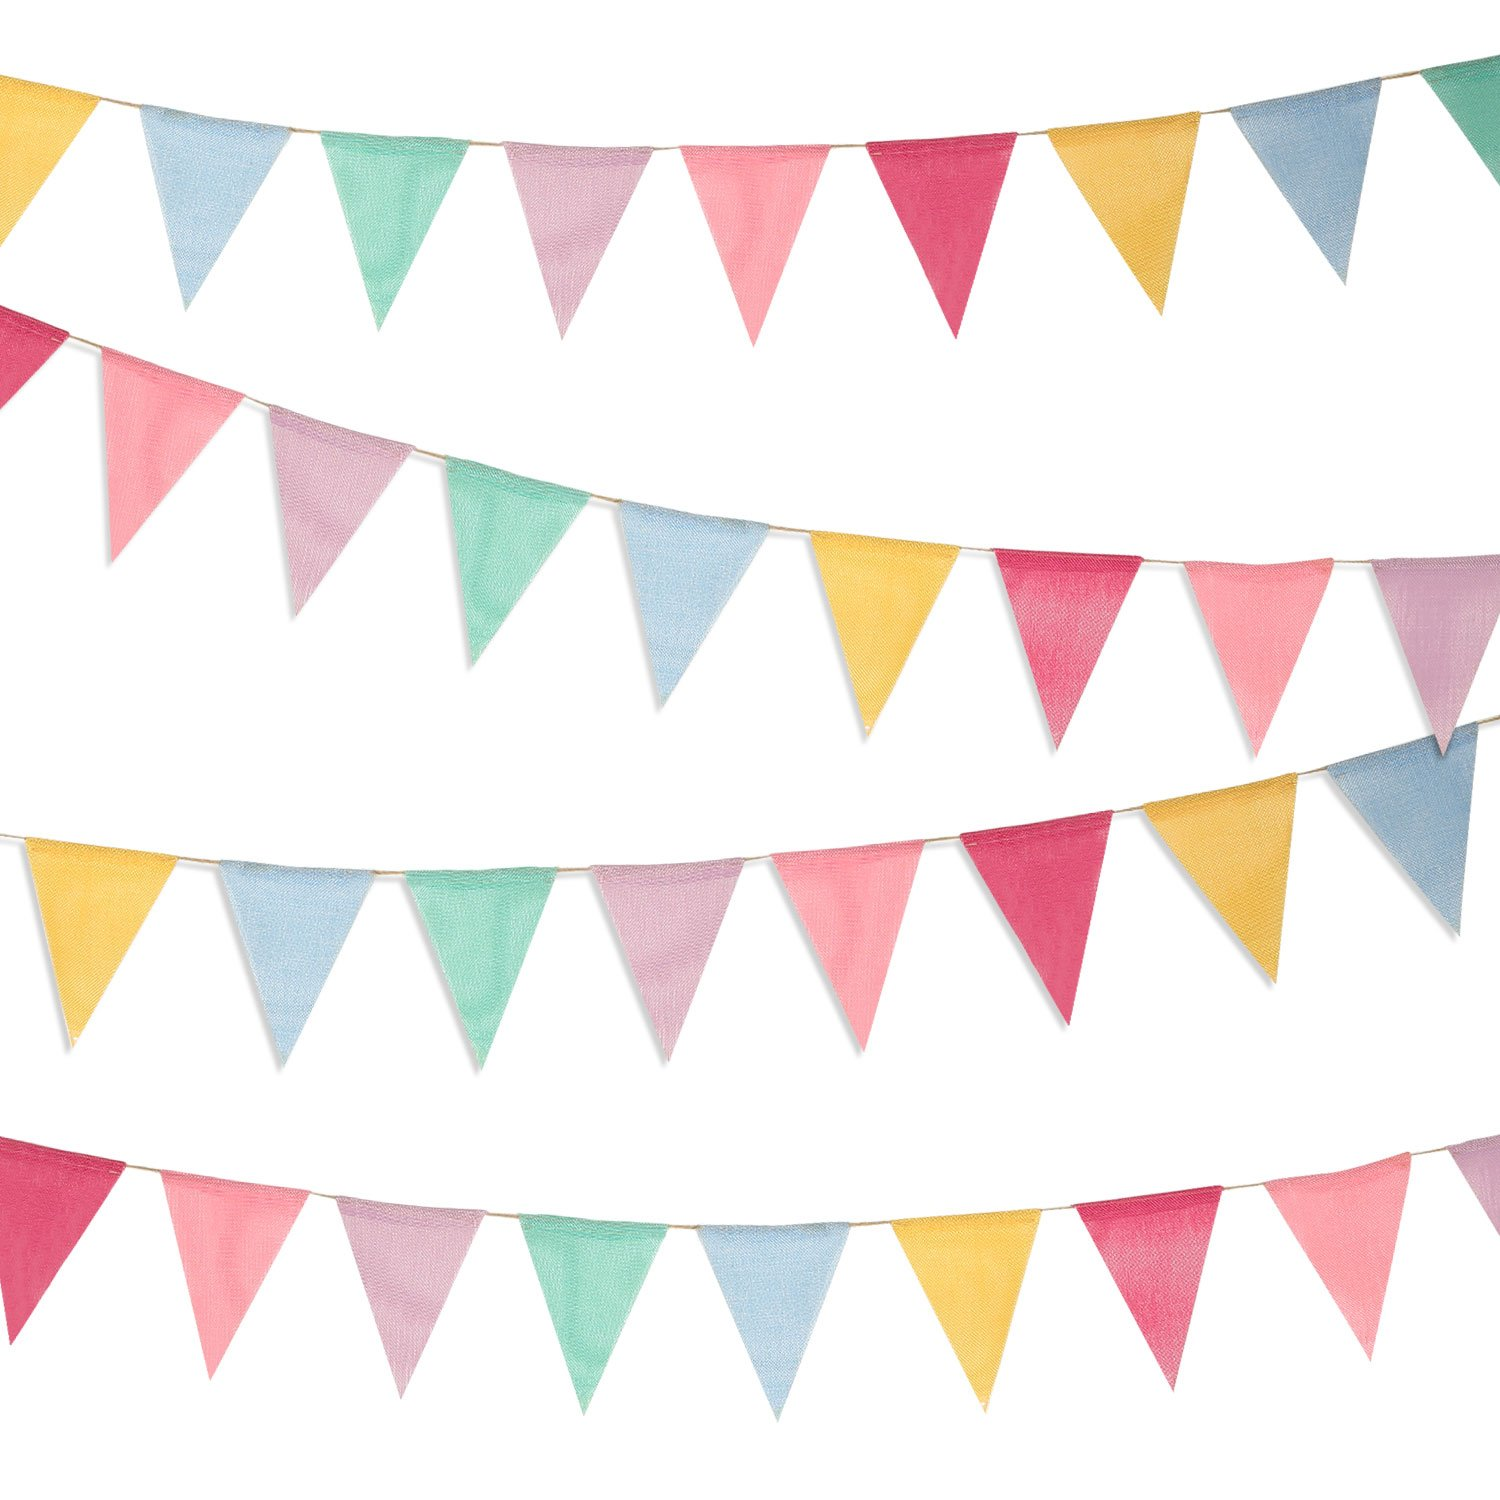 Boao 48 Pieces Colorful Pennant Banner Flags Imitated Burlap Bunting Banner for Party Decoration(4.9 x 6.7 Inch)